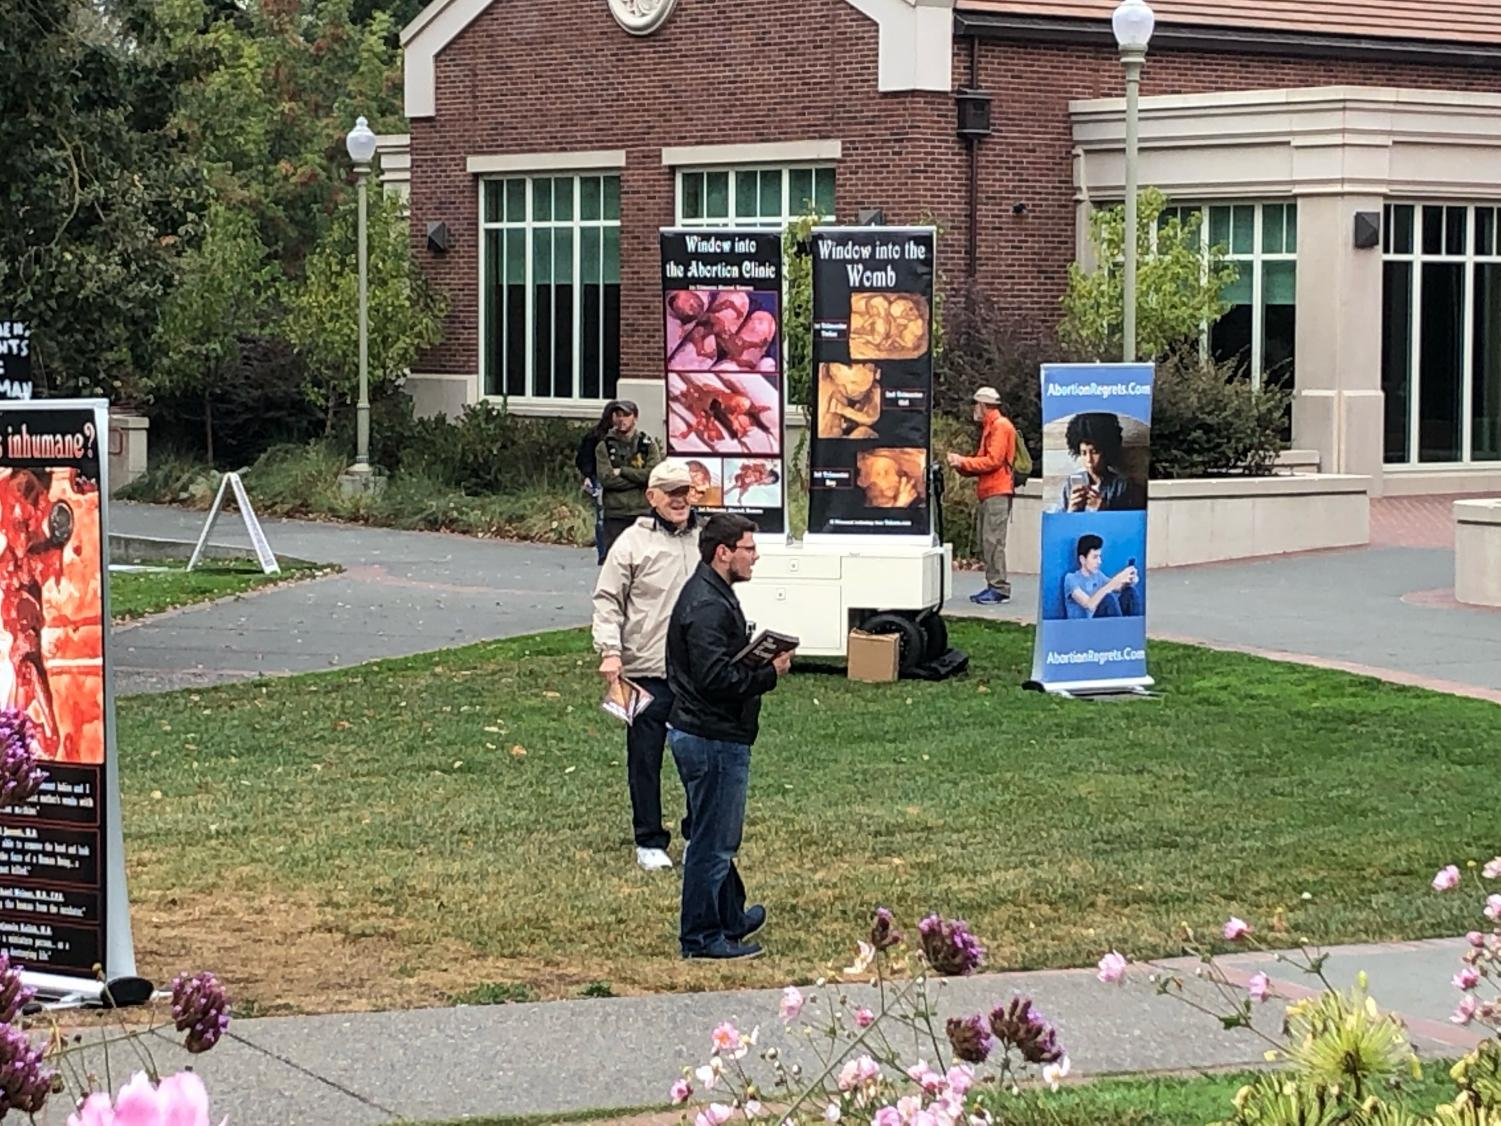 Project Truth causes much stir at SRJC in two short days. With these events, violence is always a concern.